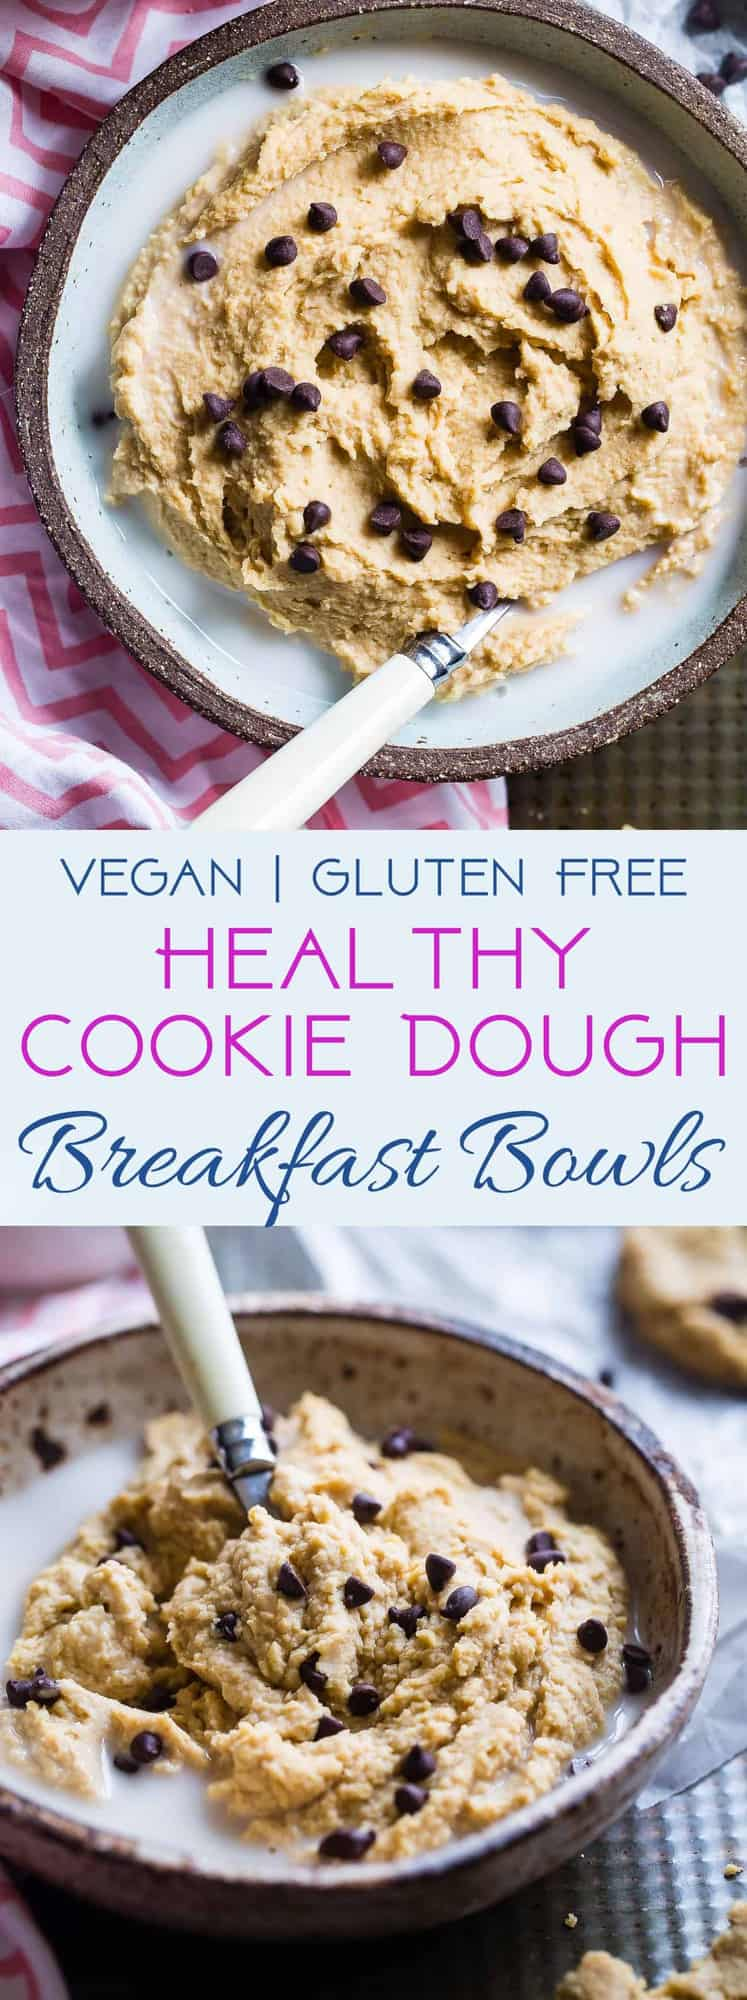 Vegan Cookie Dough Breakfast Bowls - Wake up to cookie dough for breakfast! Make-ahead friendly, gluten/grain/dairy free and packed with protein! Eating a healthy breakfast never tasted so good! | #Foodfaithfitness | #Vegan #Glutenfree #Cookiedough #Dairyfree #Healthy